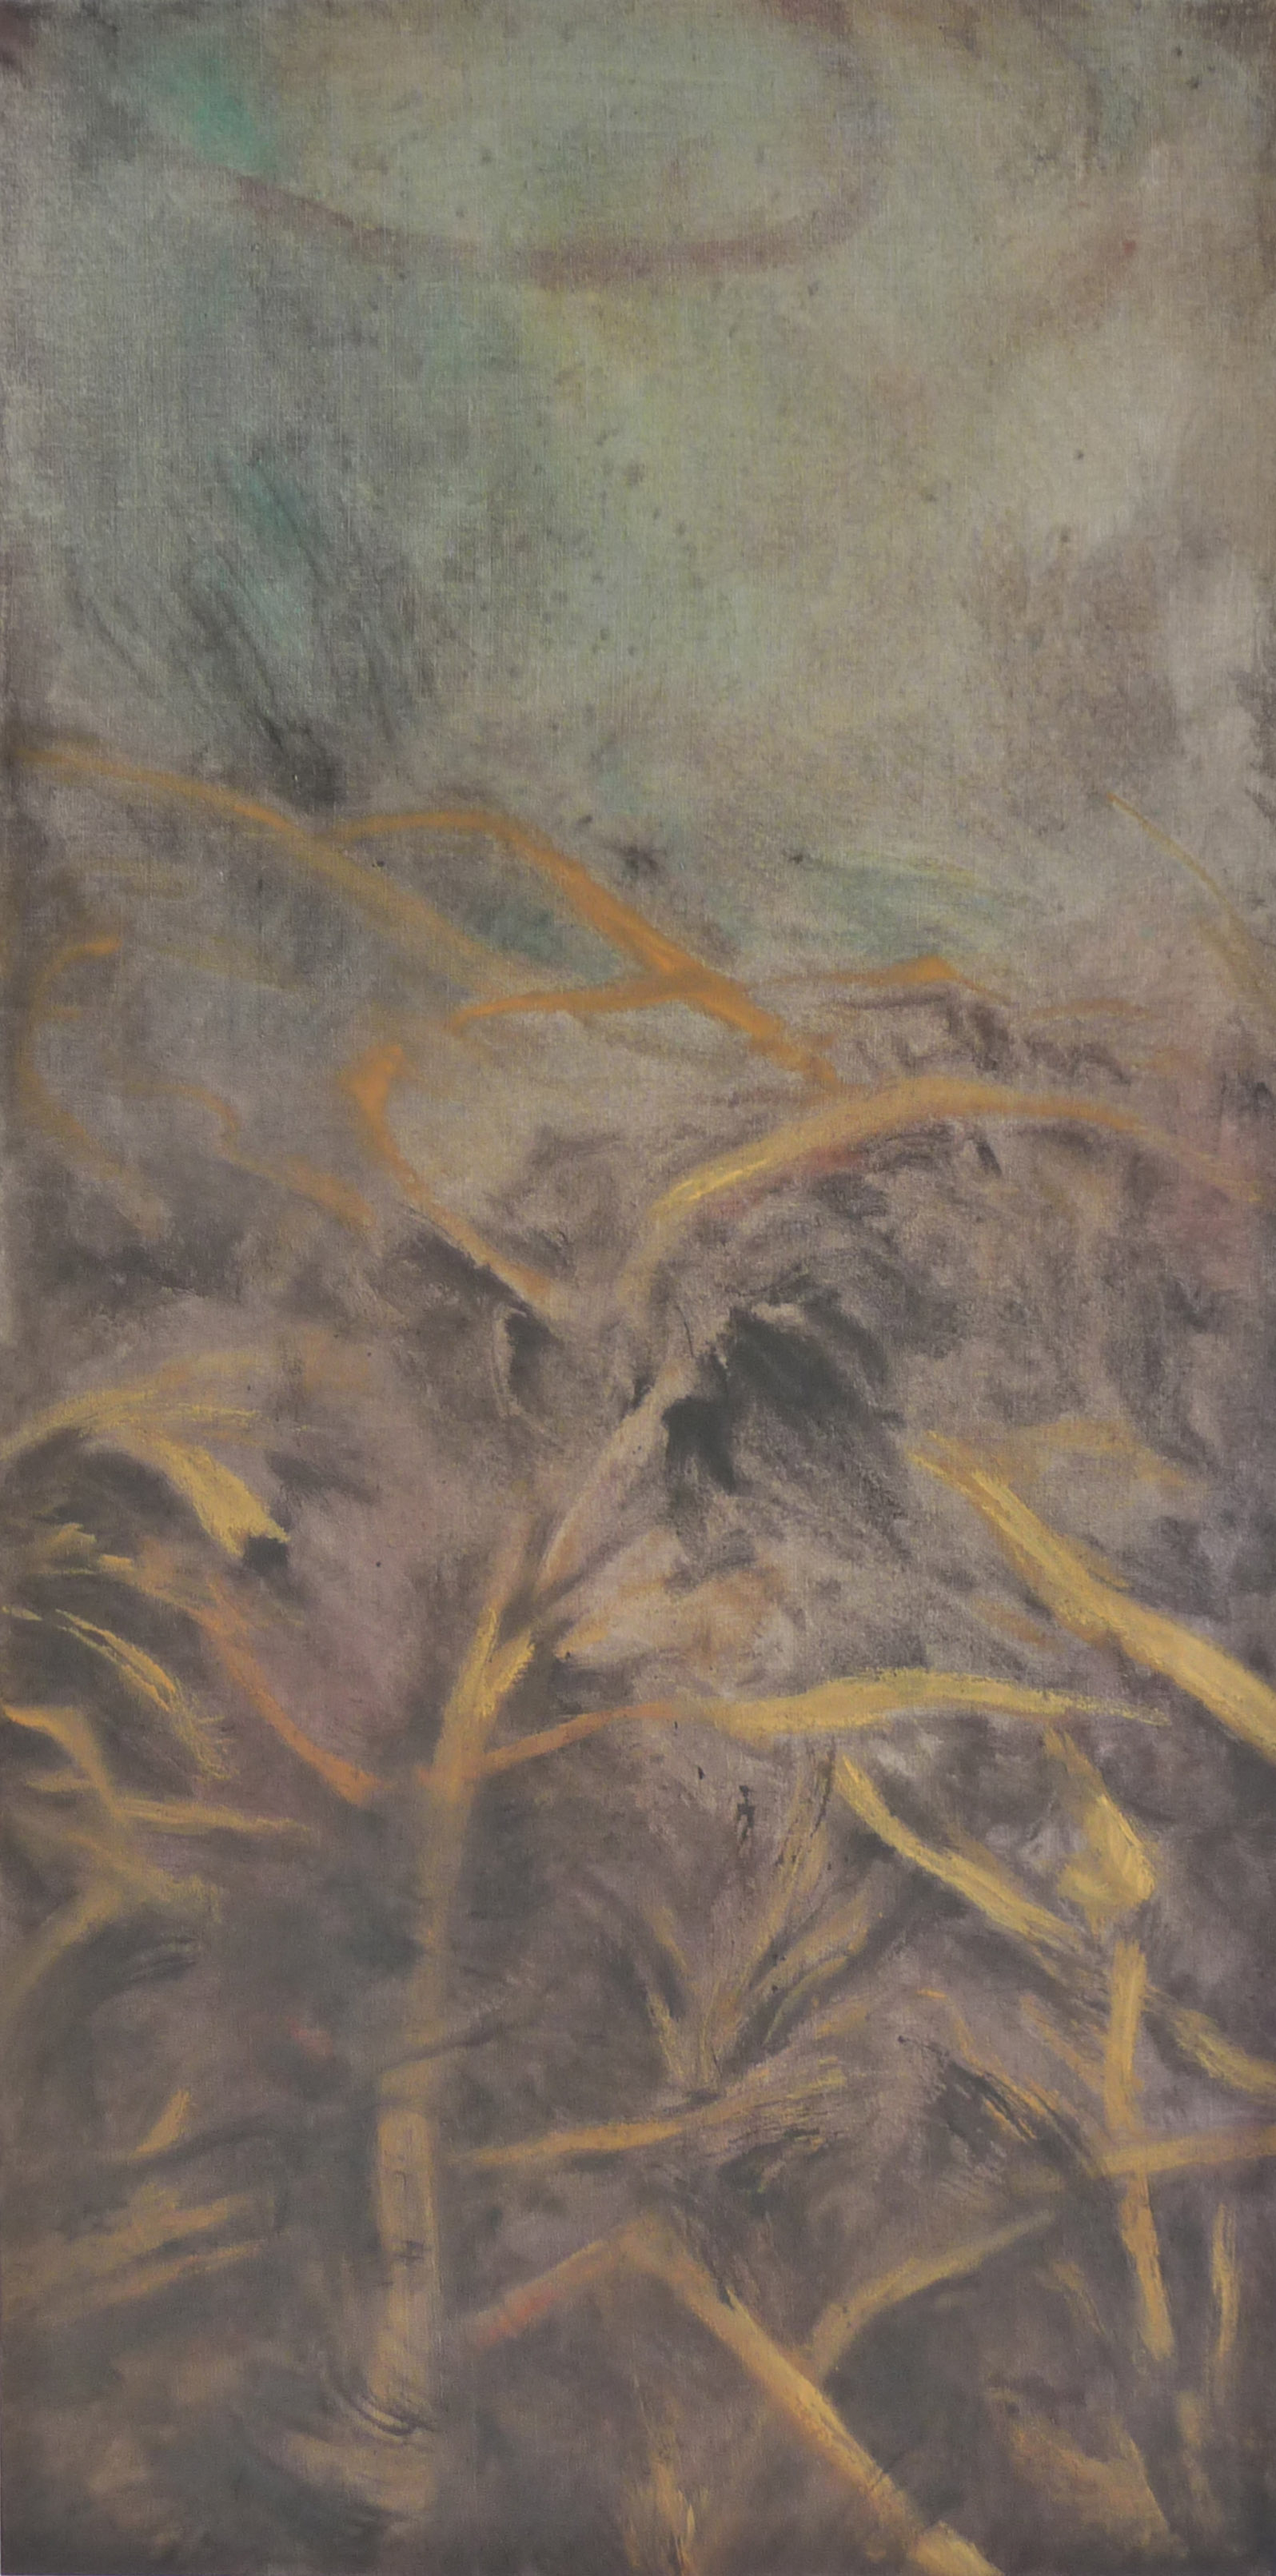 <p><strong>Desso 1275 Euro</strong><br />Punic wax on canvas, 60 x 120 cm</p>